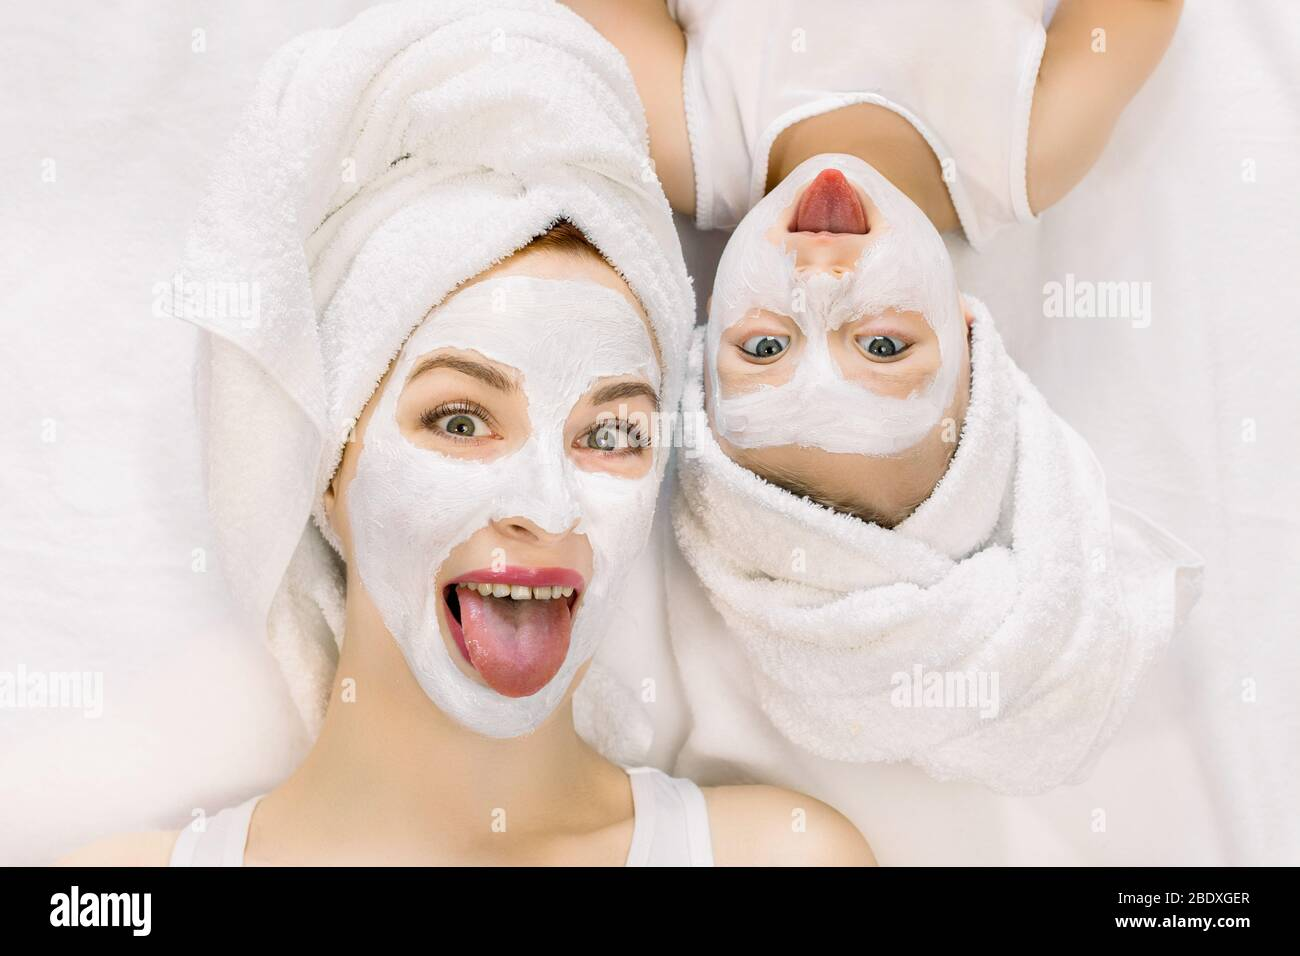 Page 2 Mother Daughter Spa High Resolution Stock Photography And Images Alamy